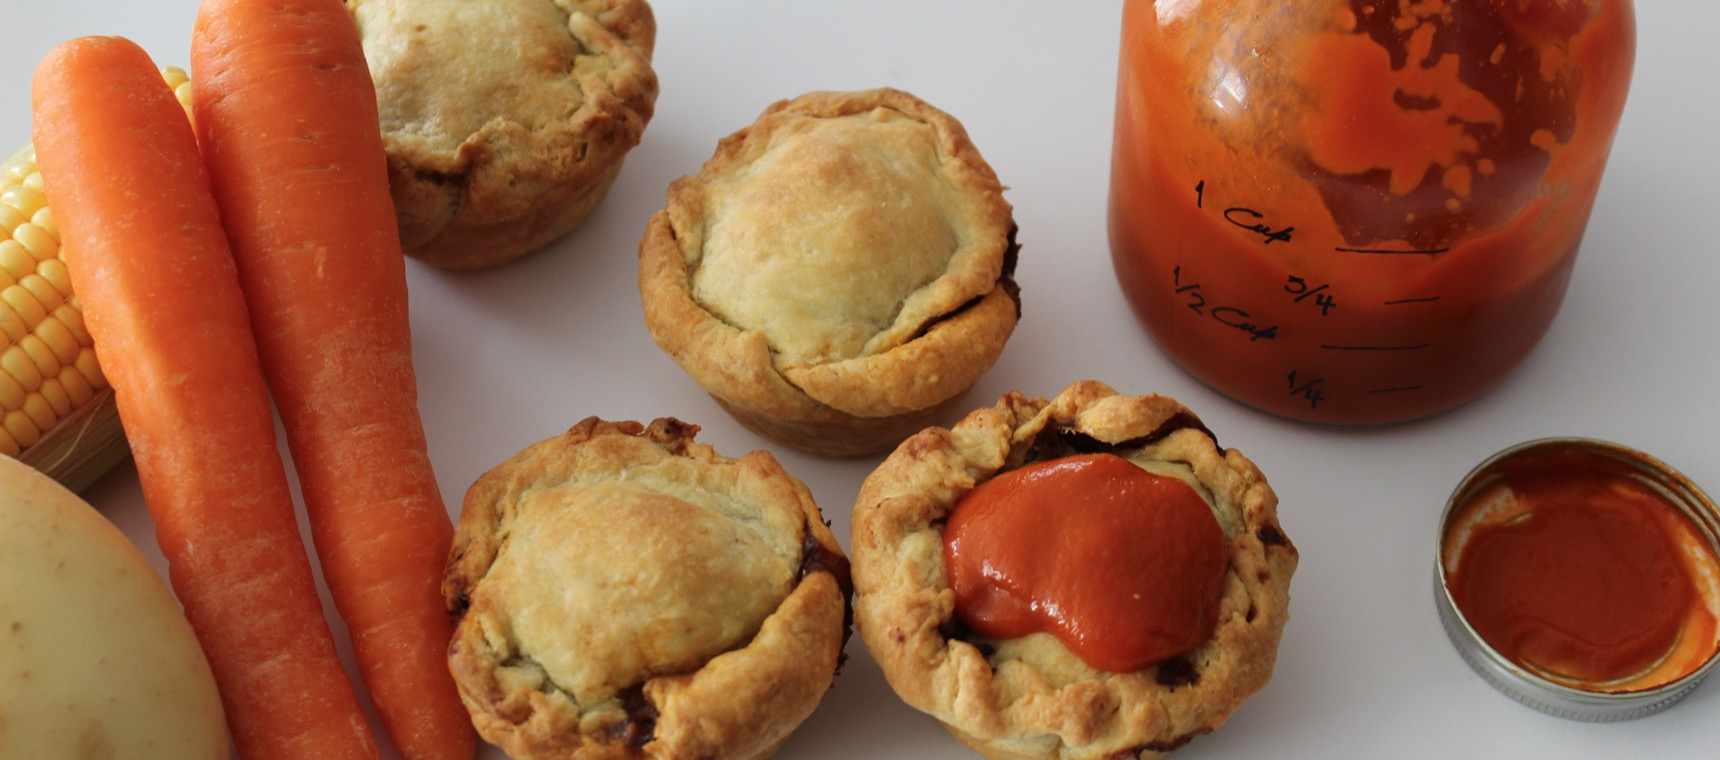 Rustic Slow Cooked Pies